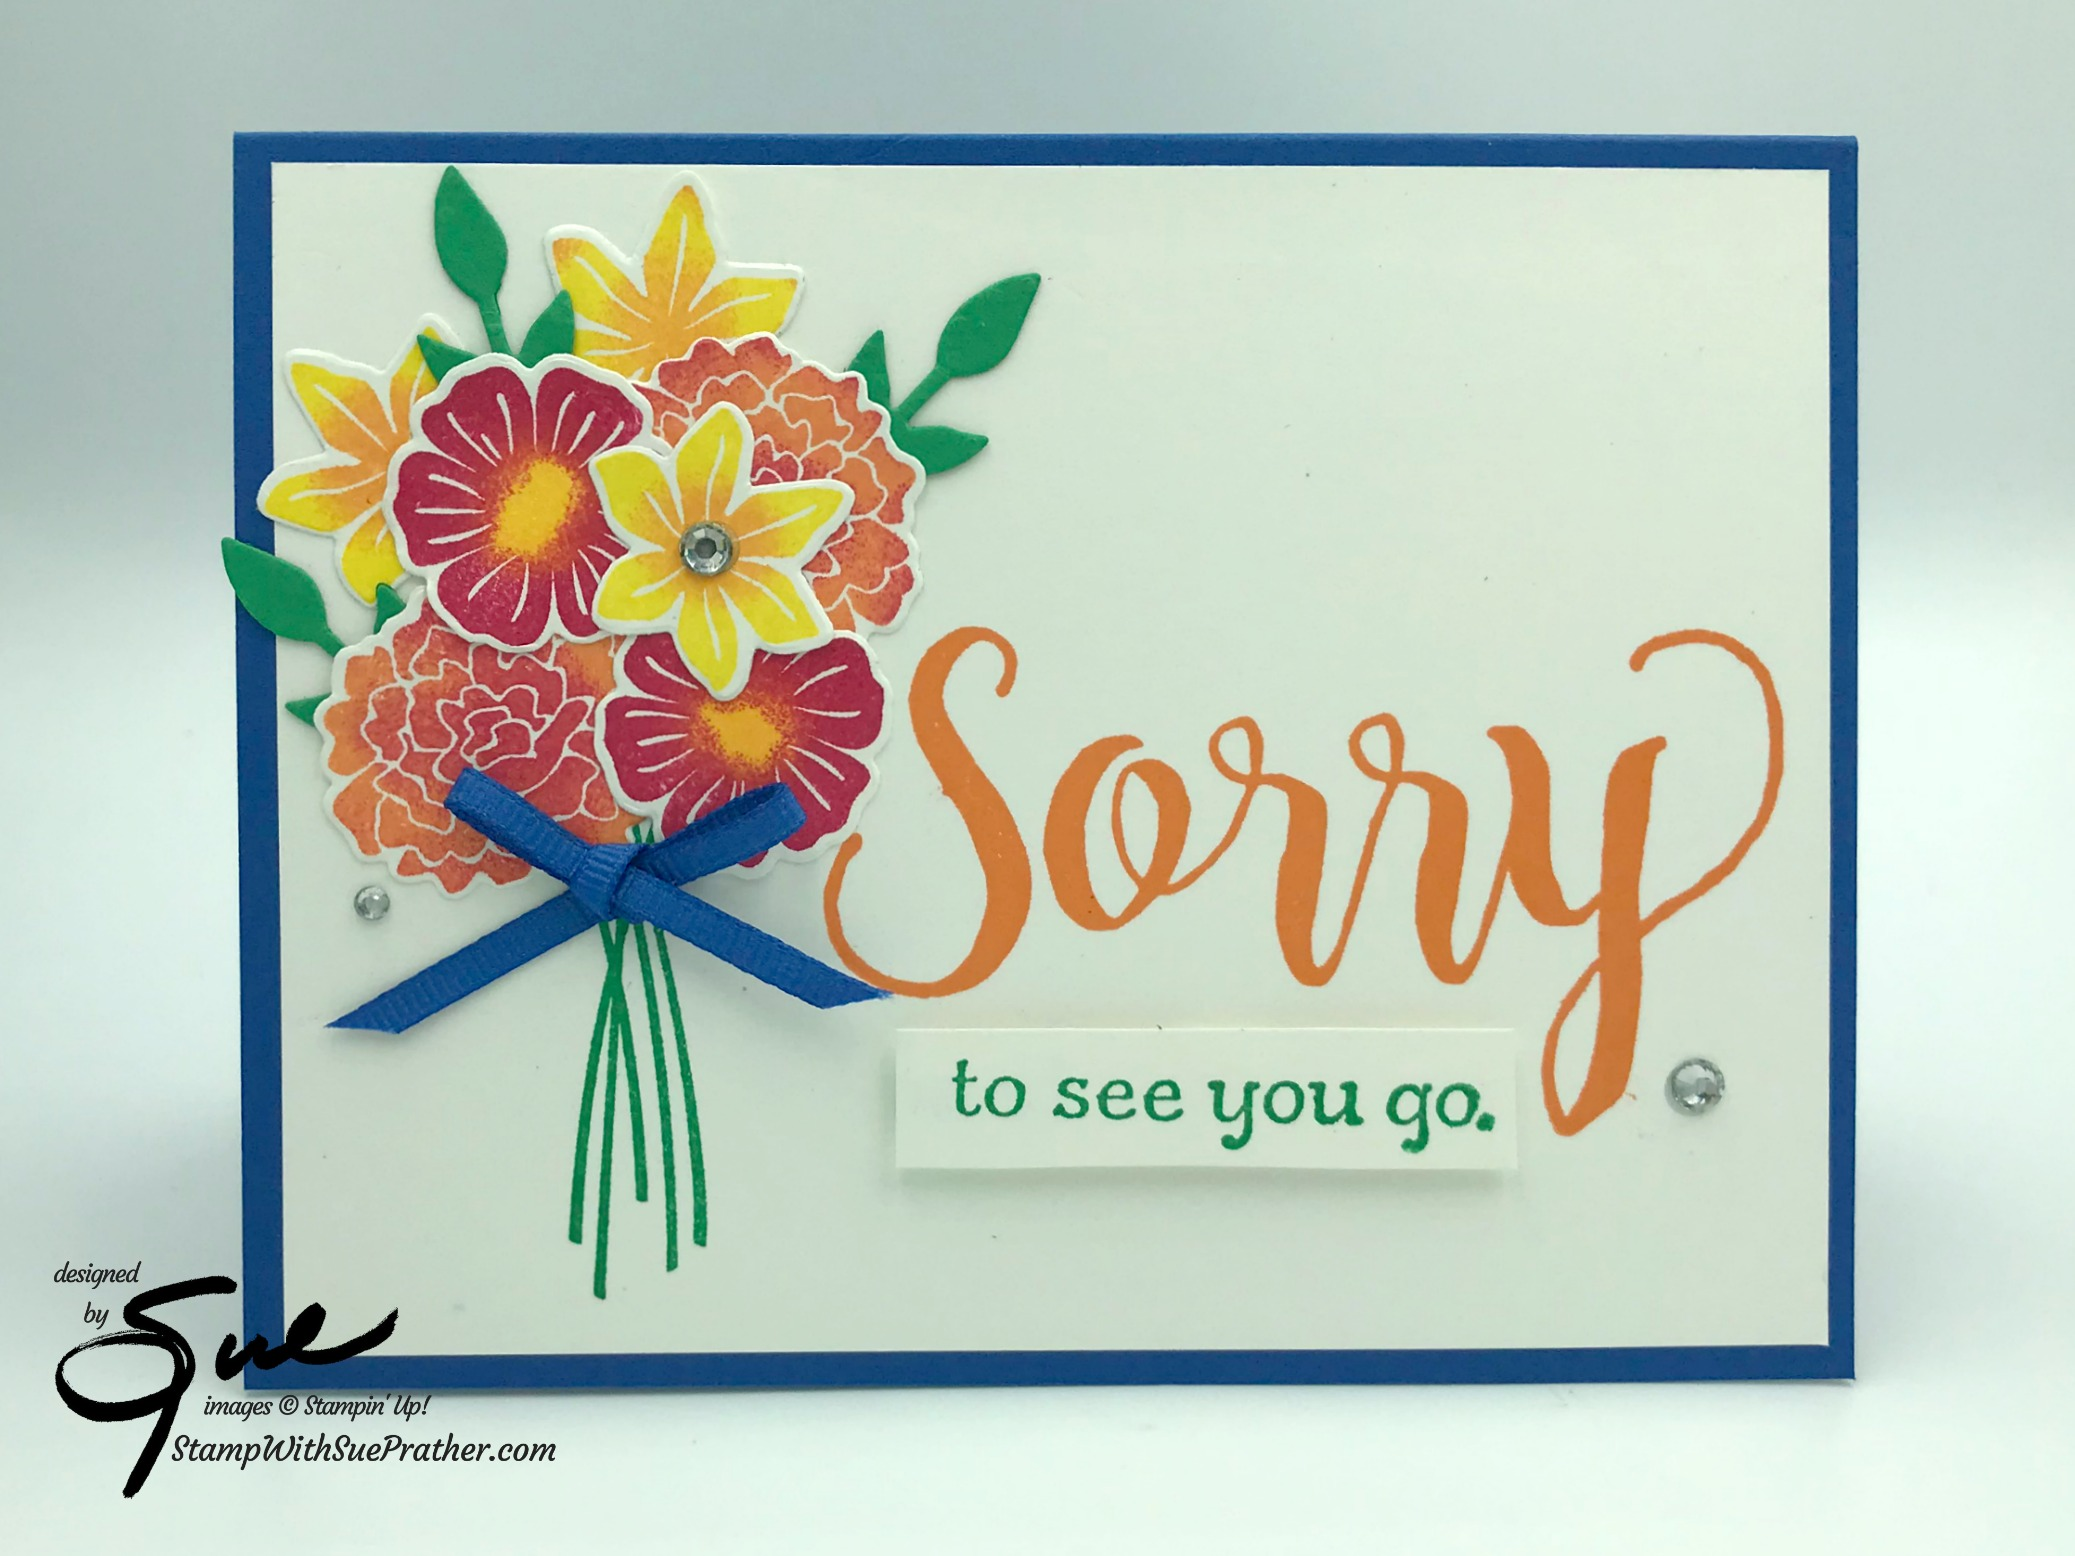 Stampin Up Beautiful Bouquet Goodbye For Simply Stampin Sunday Stamp With Sue Prather